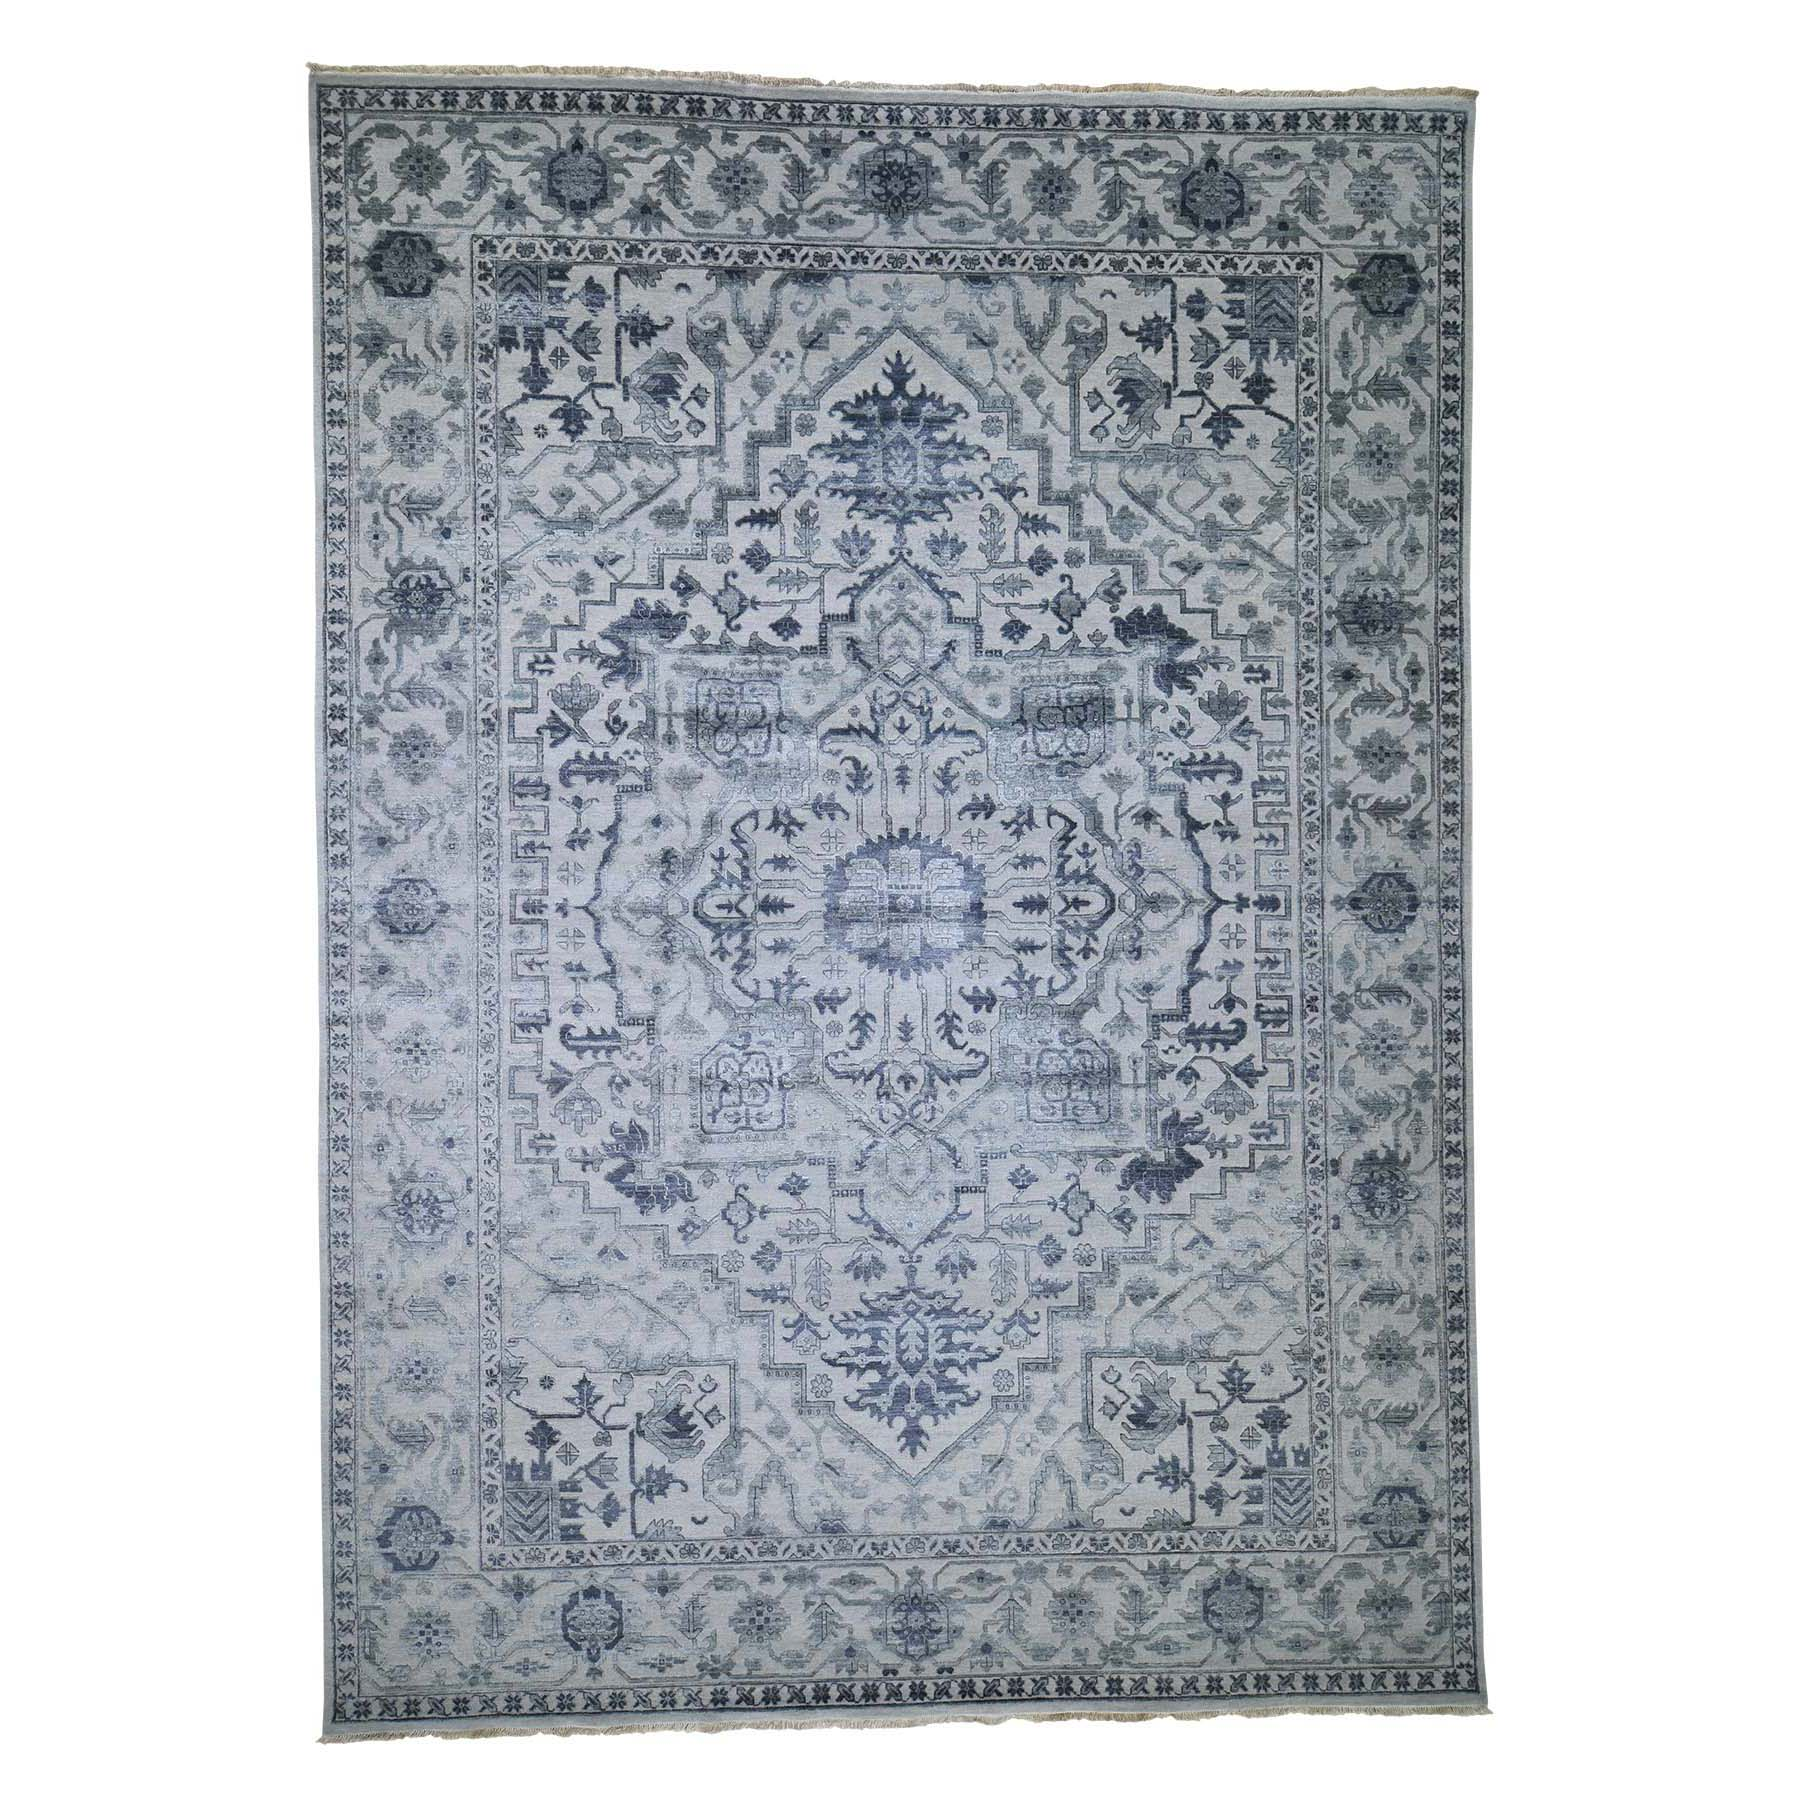 10'x14' Silver Heriz Design Wool And Silk Hi-lo Pile Hand-Knotted Oriental Rug